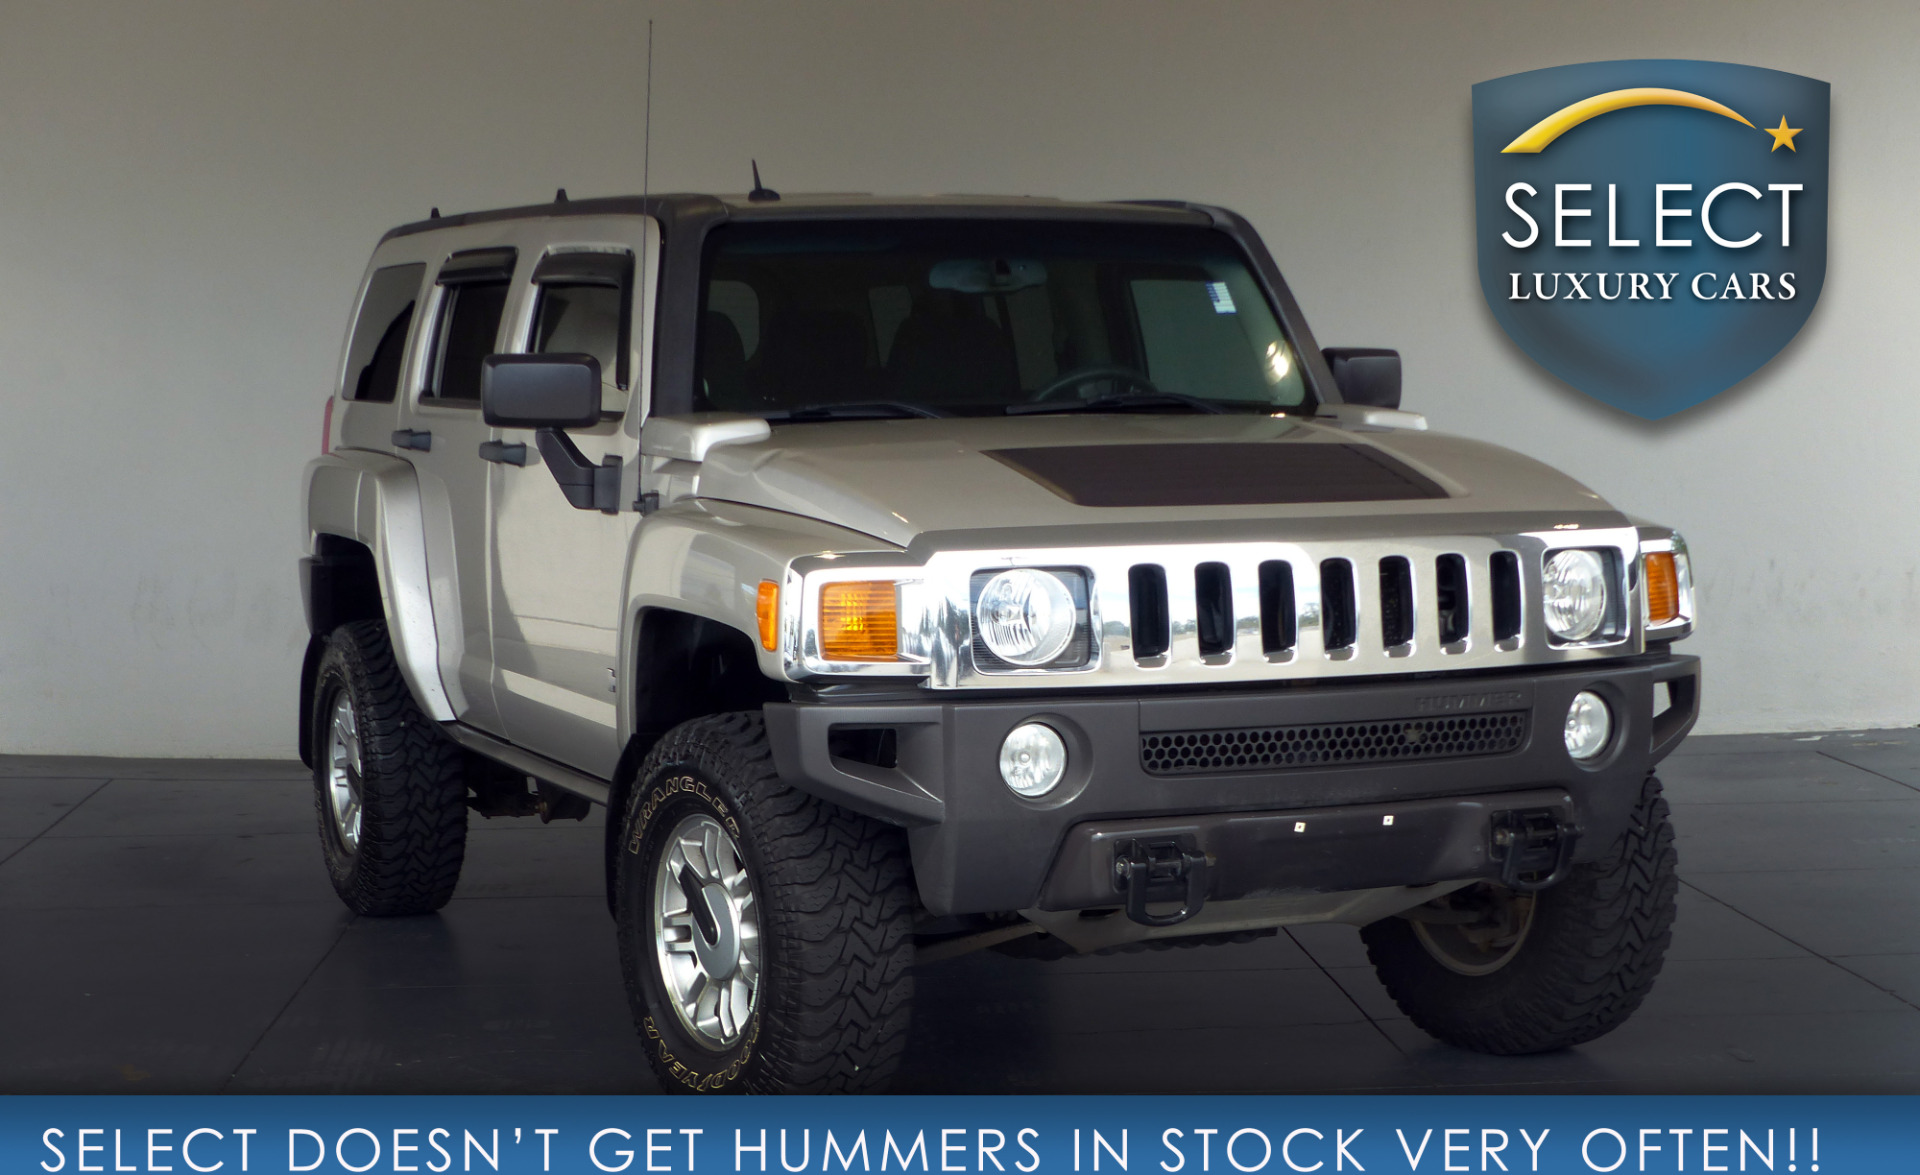 2006 h3 hummer reviews | 2006 hummer h3 review 2006 hummer ...